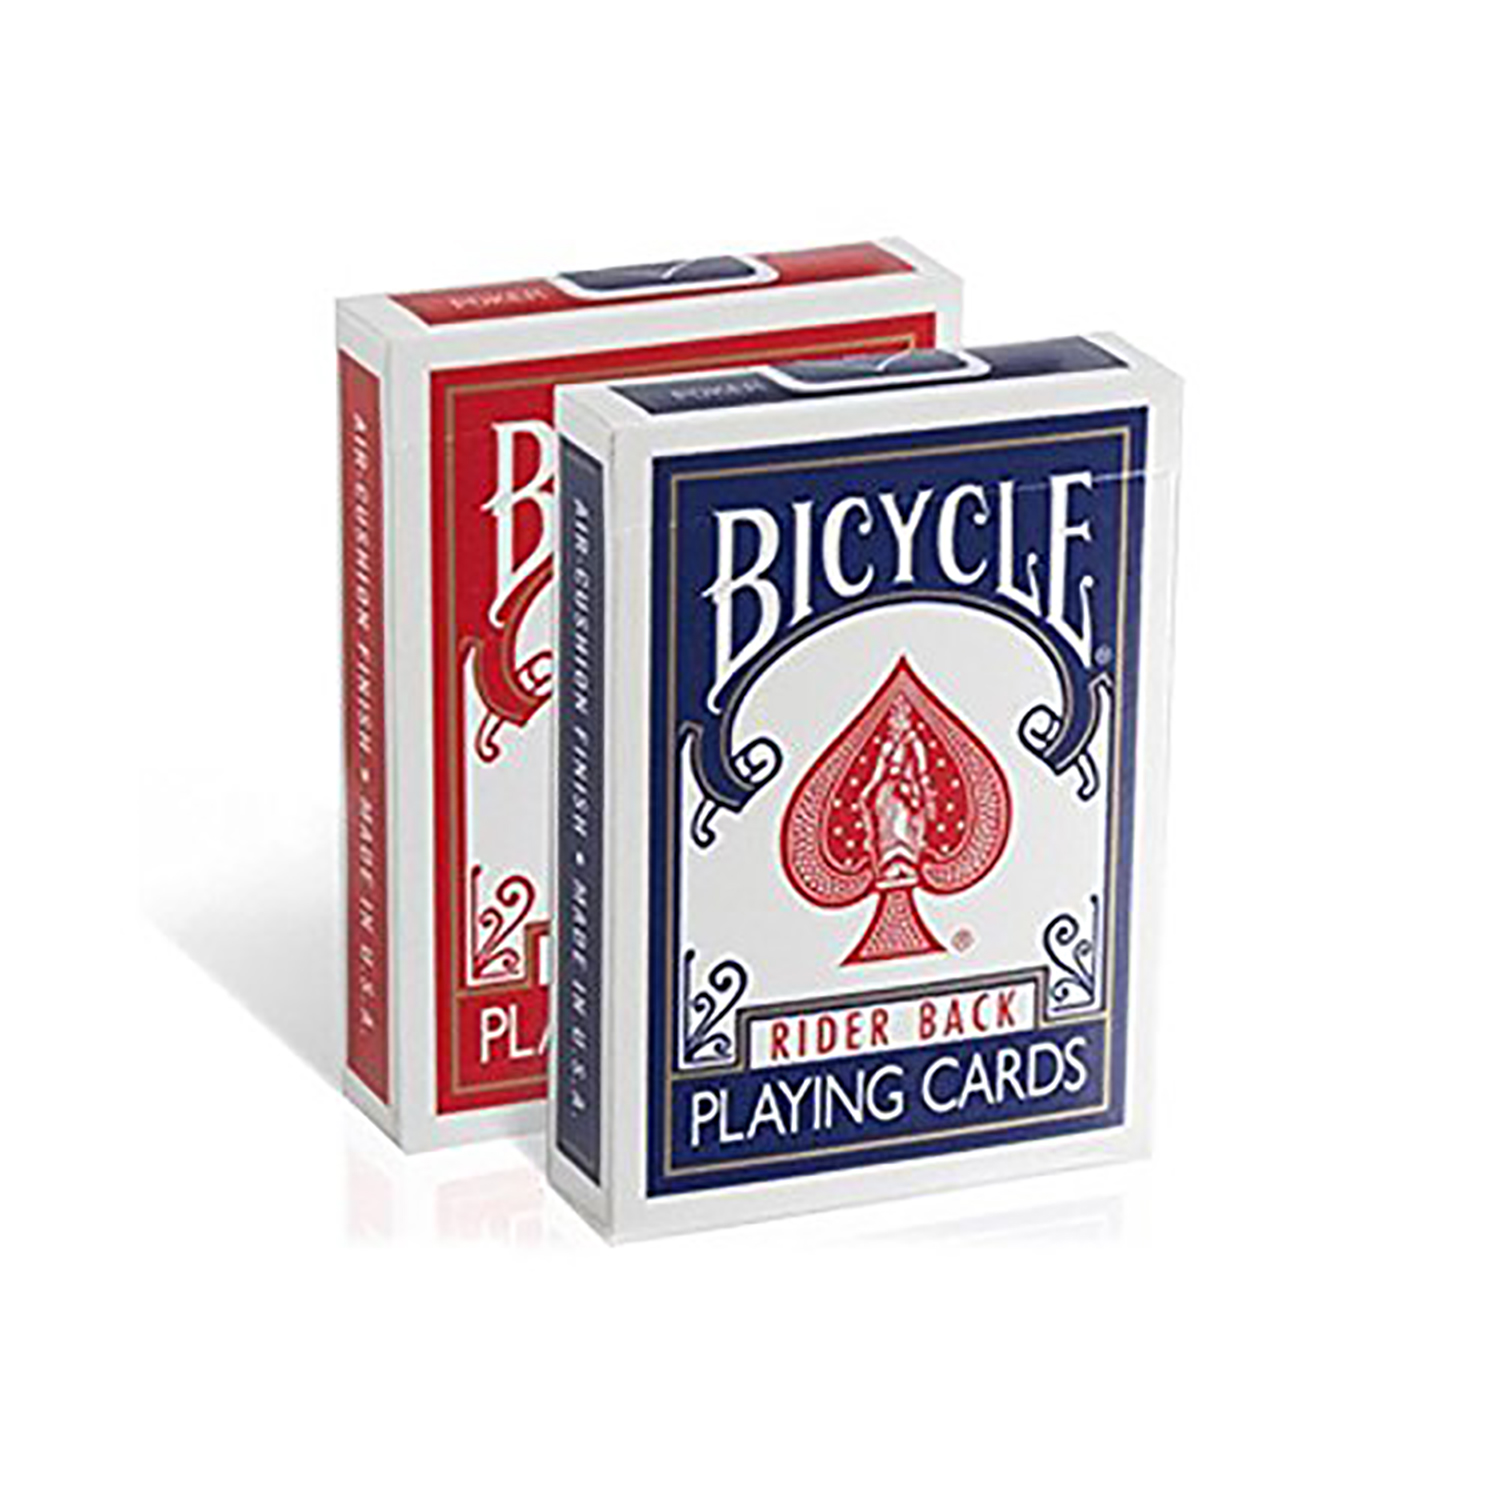 Poker Size Standard Index Playing Cards Packs in Bulk Wholesale (Pack of 4) by Bicycle